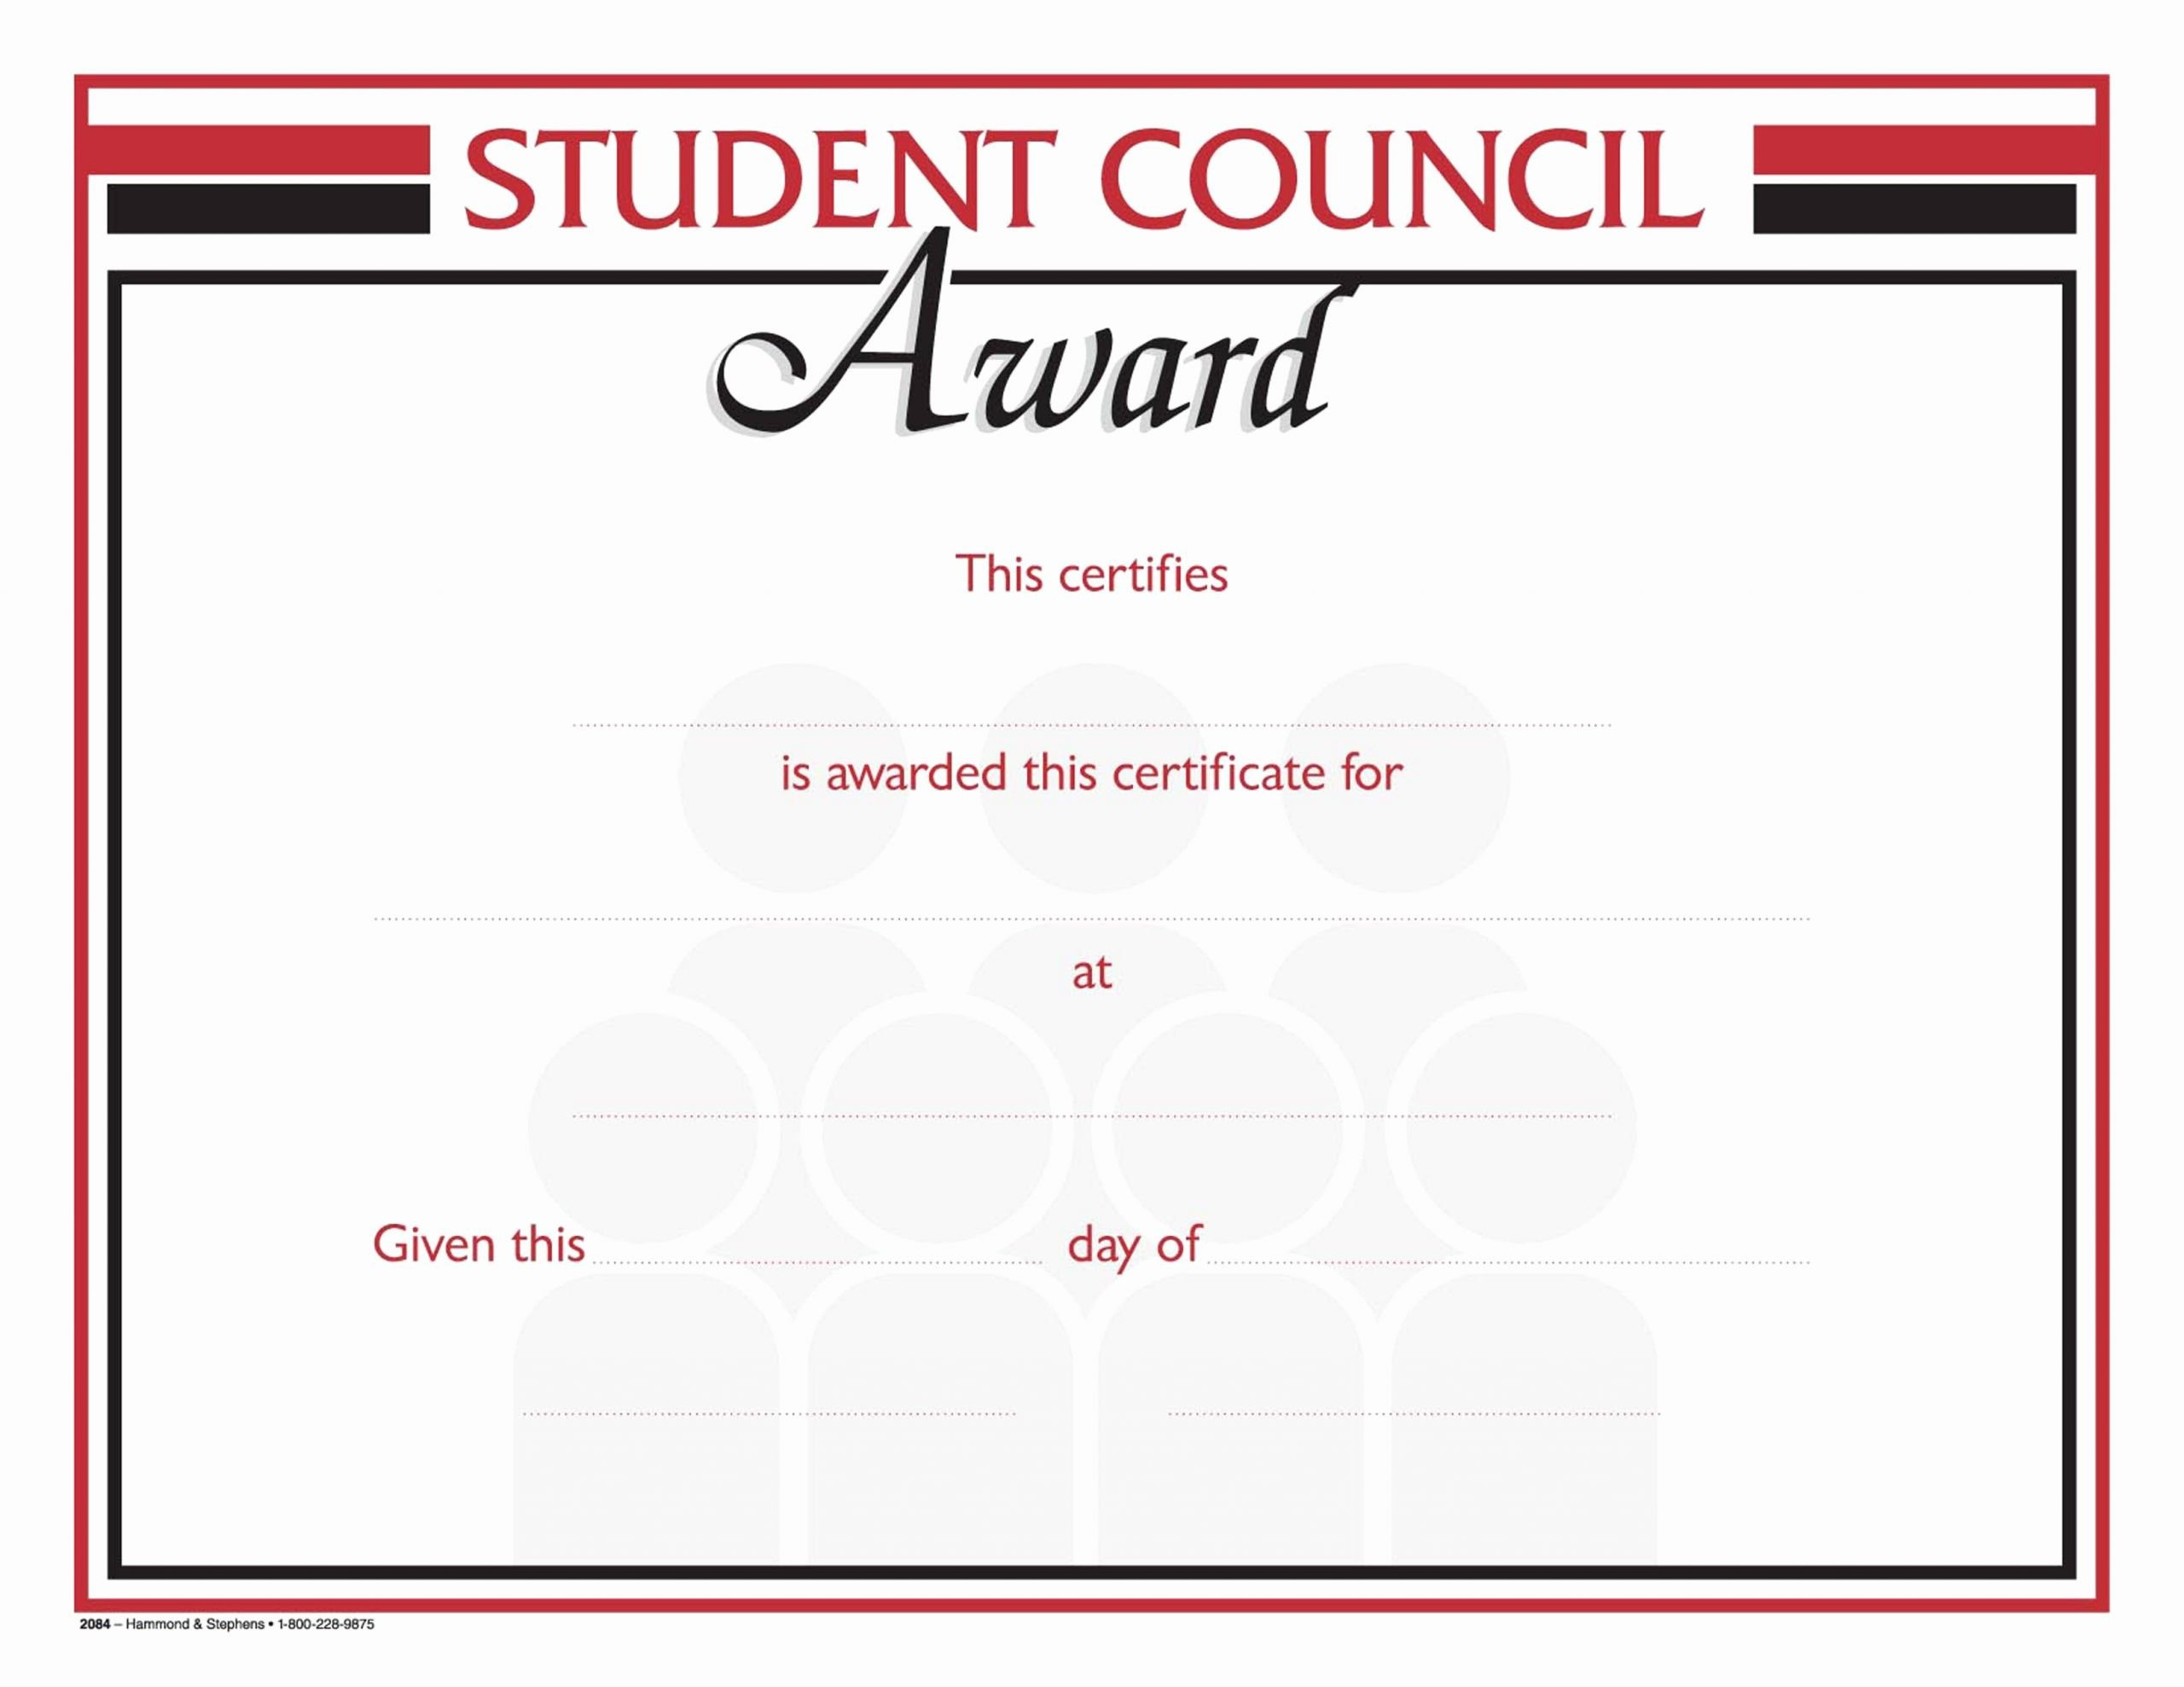 20 Student Council Awards Certificates ™  Dannybarrantes intended for Awesome Student Council Certificate Template